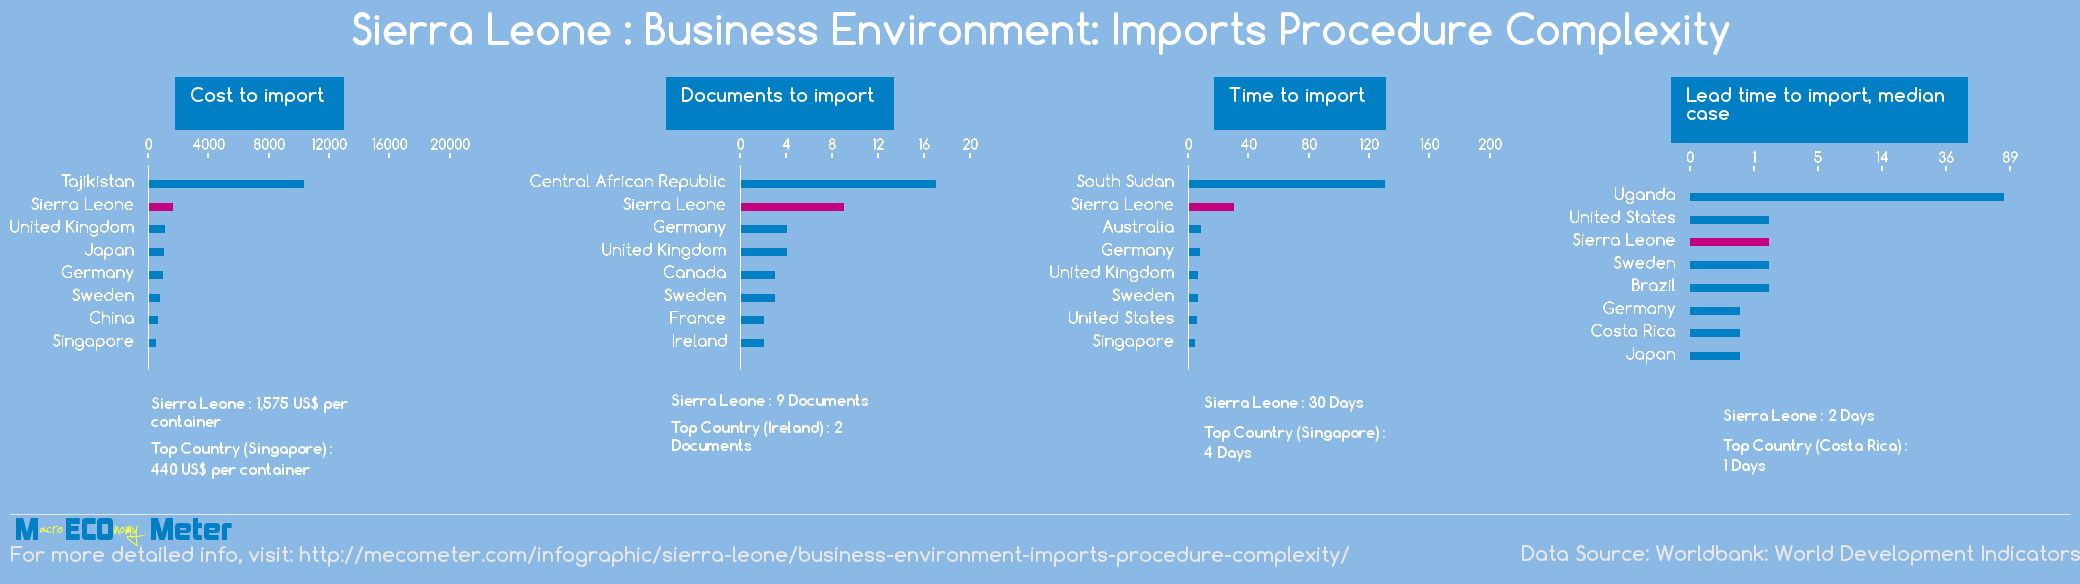 Sierra Leone : Business Environment: Imports Procedure Complexity